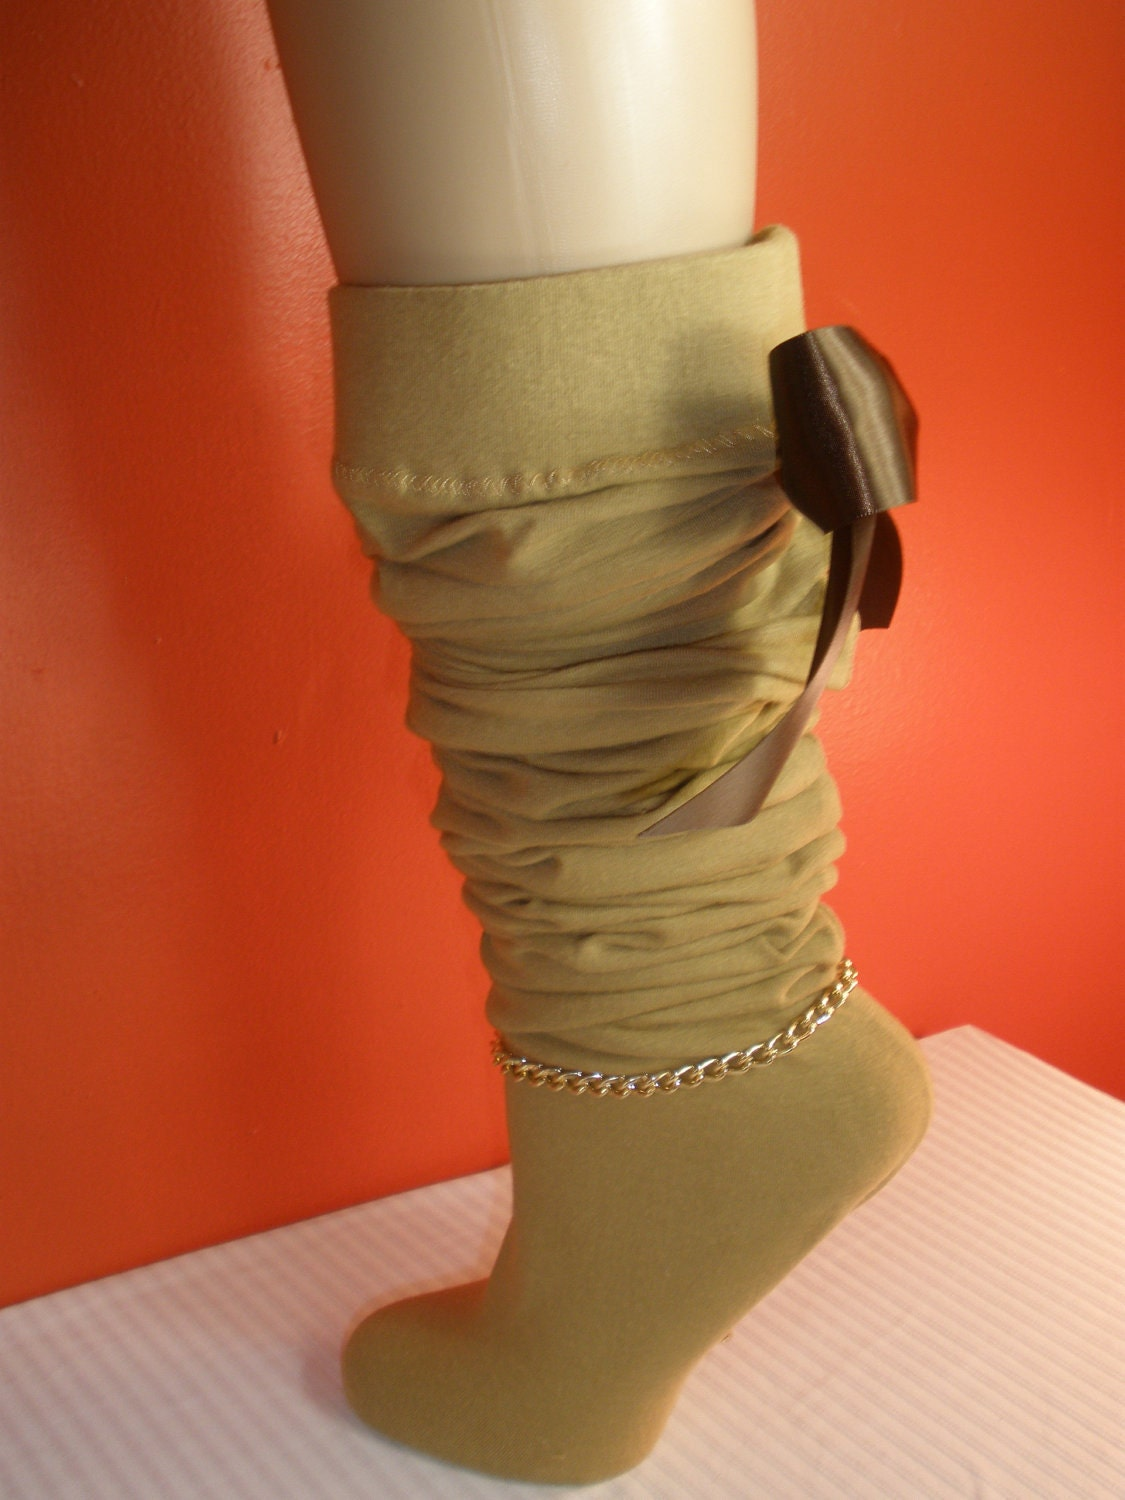 Gorgeous Lady Scrunchie Stocking Socks with Gold Attractive Anklet and Cute Removeable Bow on Back, Thigh High Stockings